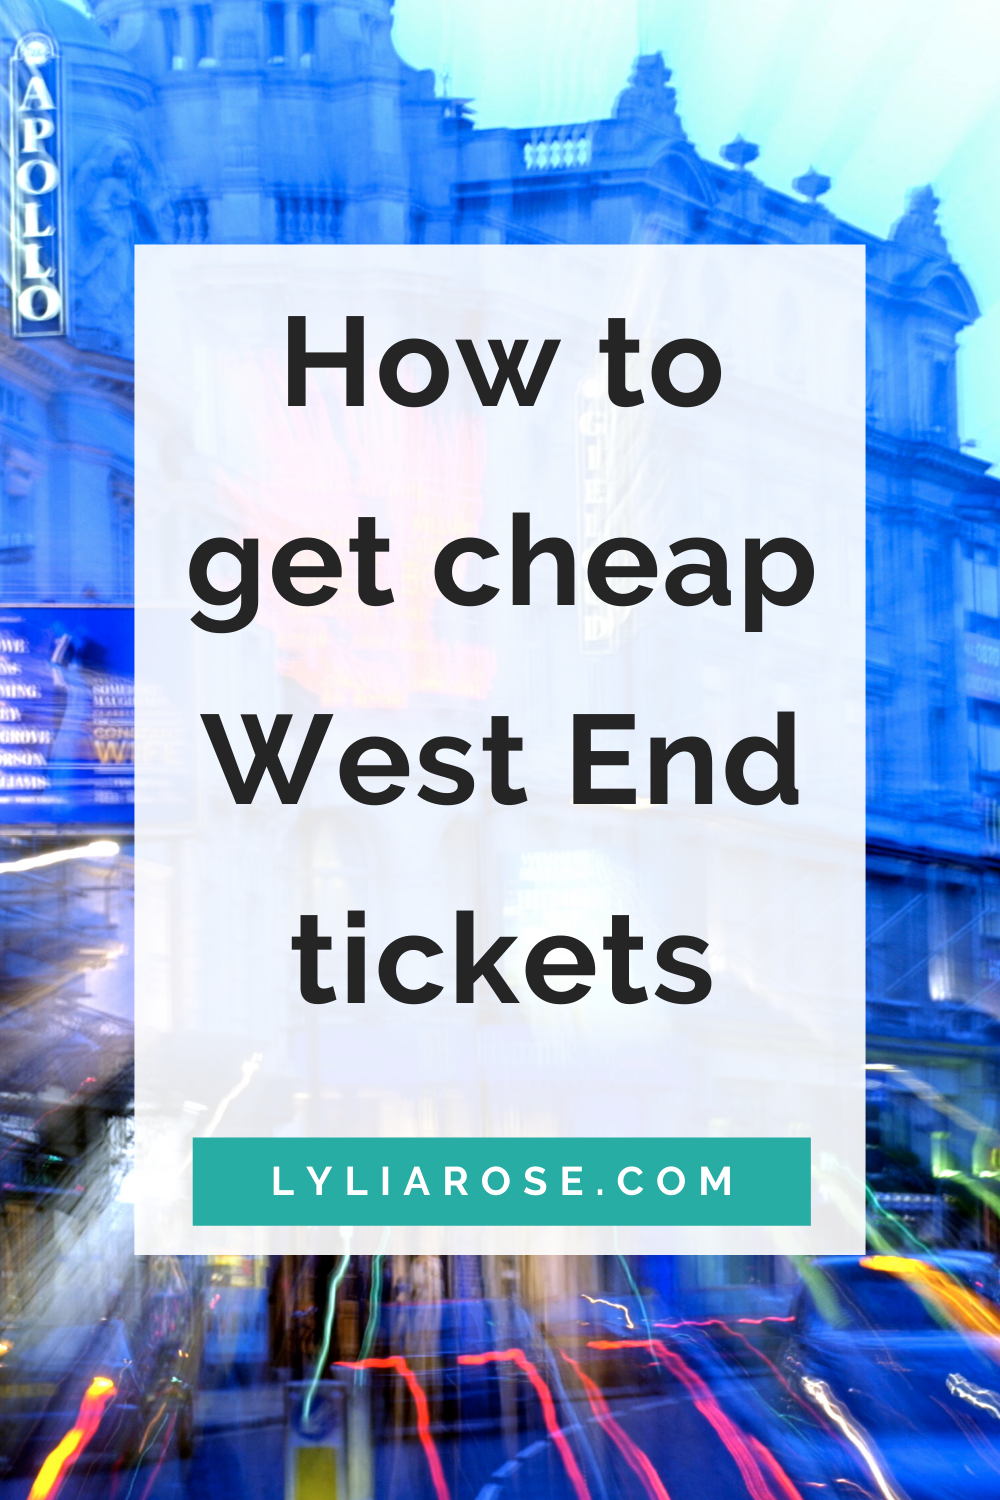 How to get cheap West End tickets